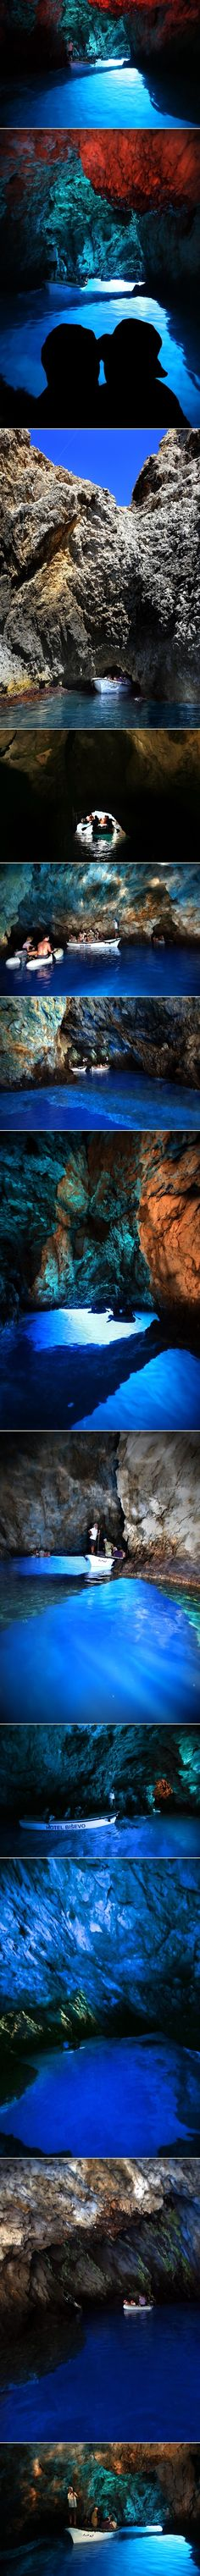 Modra špilja, Biševo, Croatia. The Blue Cave, one of the most attractive natural phenomena in the Adriatic, is located on the small island of Biševo near Vis. It is only 17 meters wide and 31 meters long. The cave is accessible through a narrow sea passage between the rocks. Sunlight comes in through an underwater opening, flooding the sea and the visitors with silver and blue colors. The only known habitat for the monk seal is right next to it.